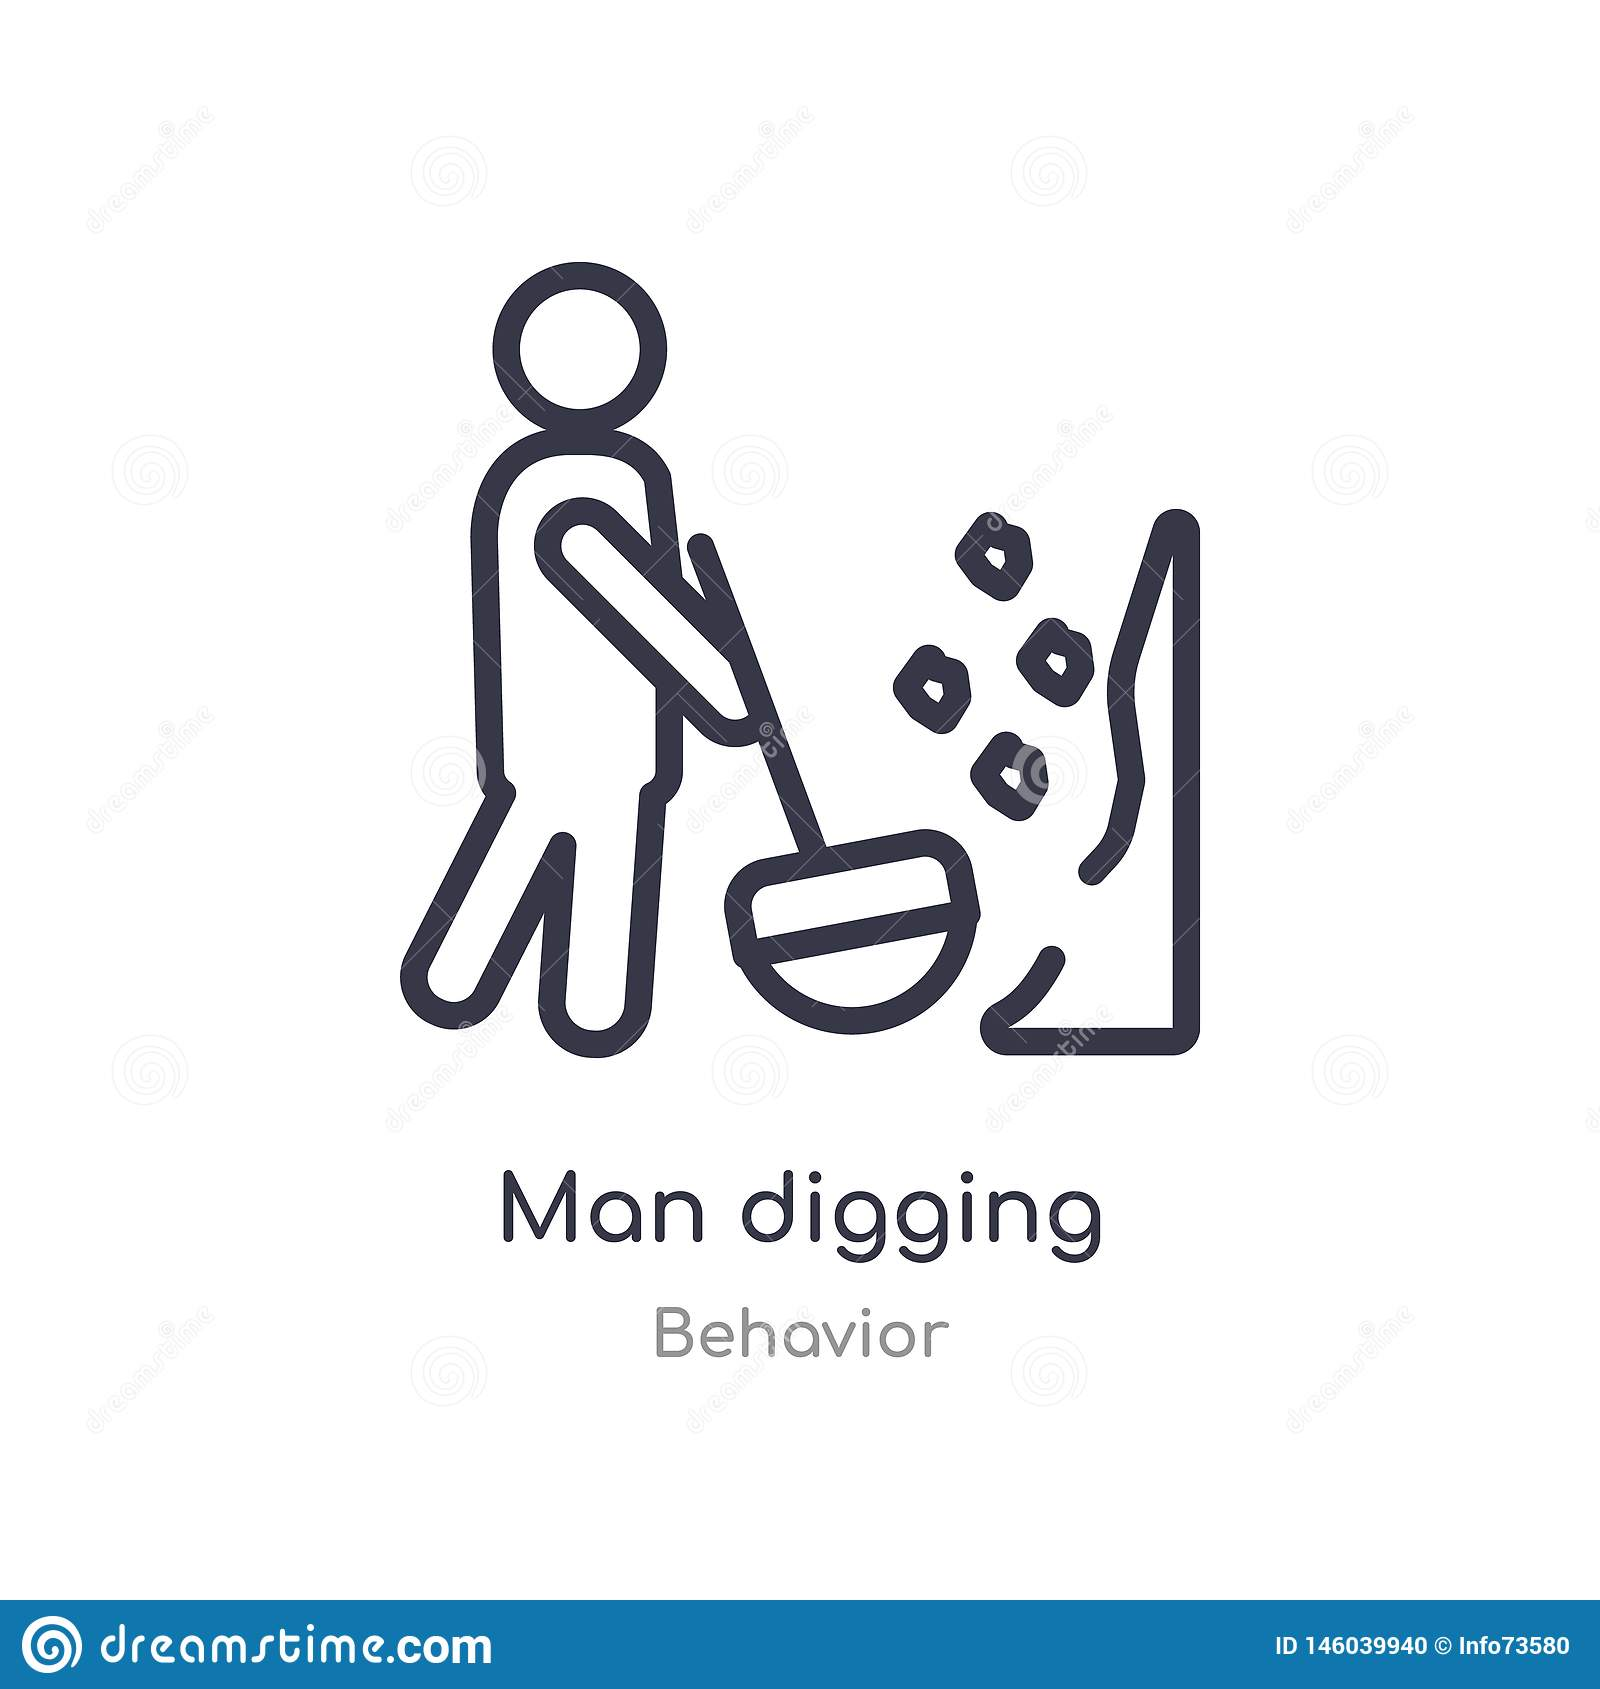 man digging outline icon. isolated line vector illustration from behavior collection. editable thin stroke man digging icon on